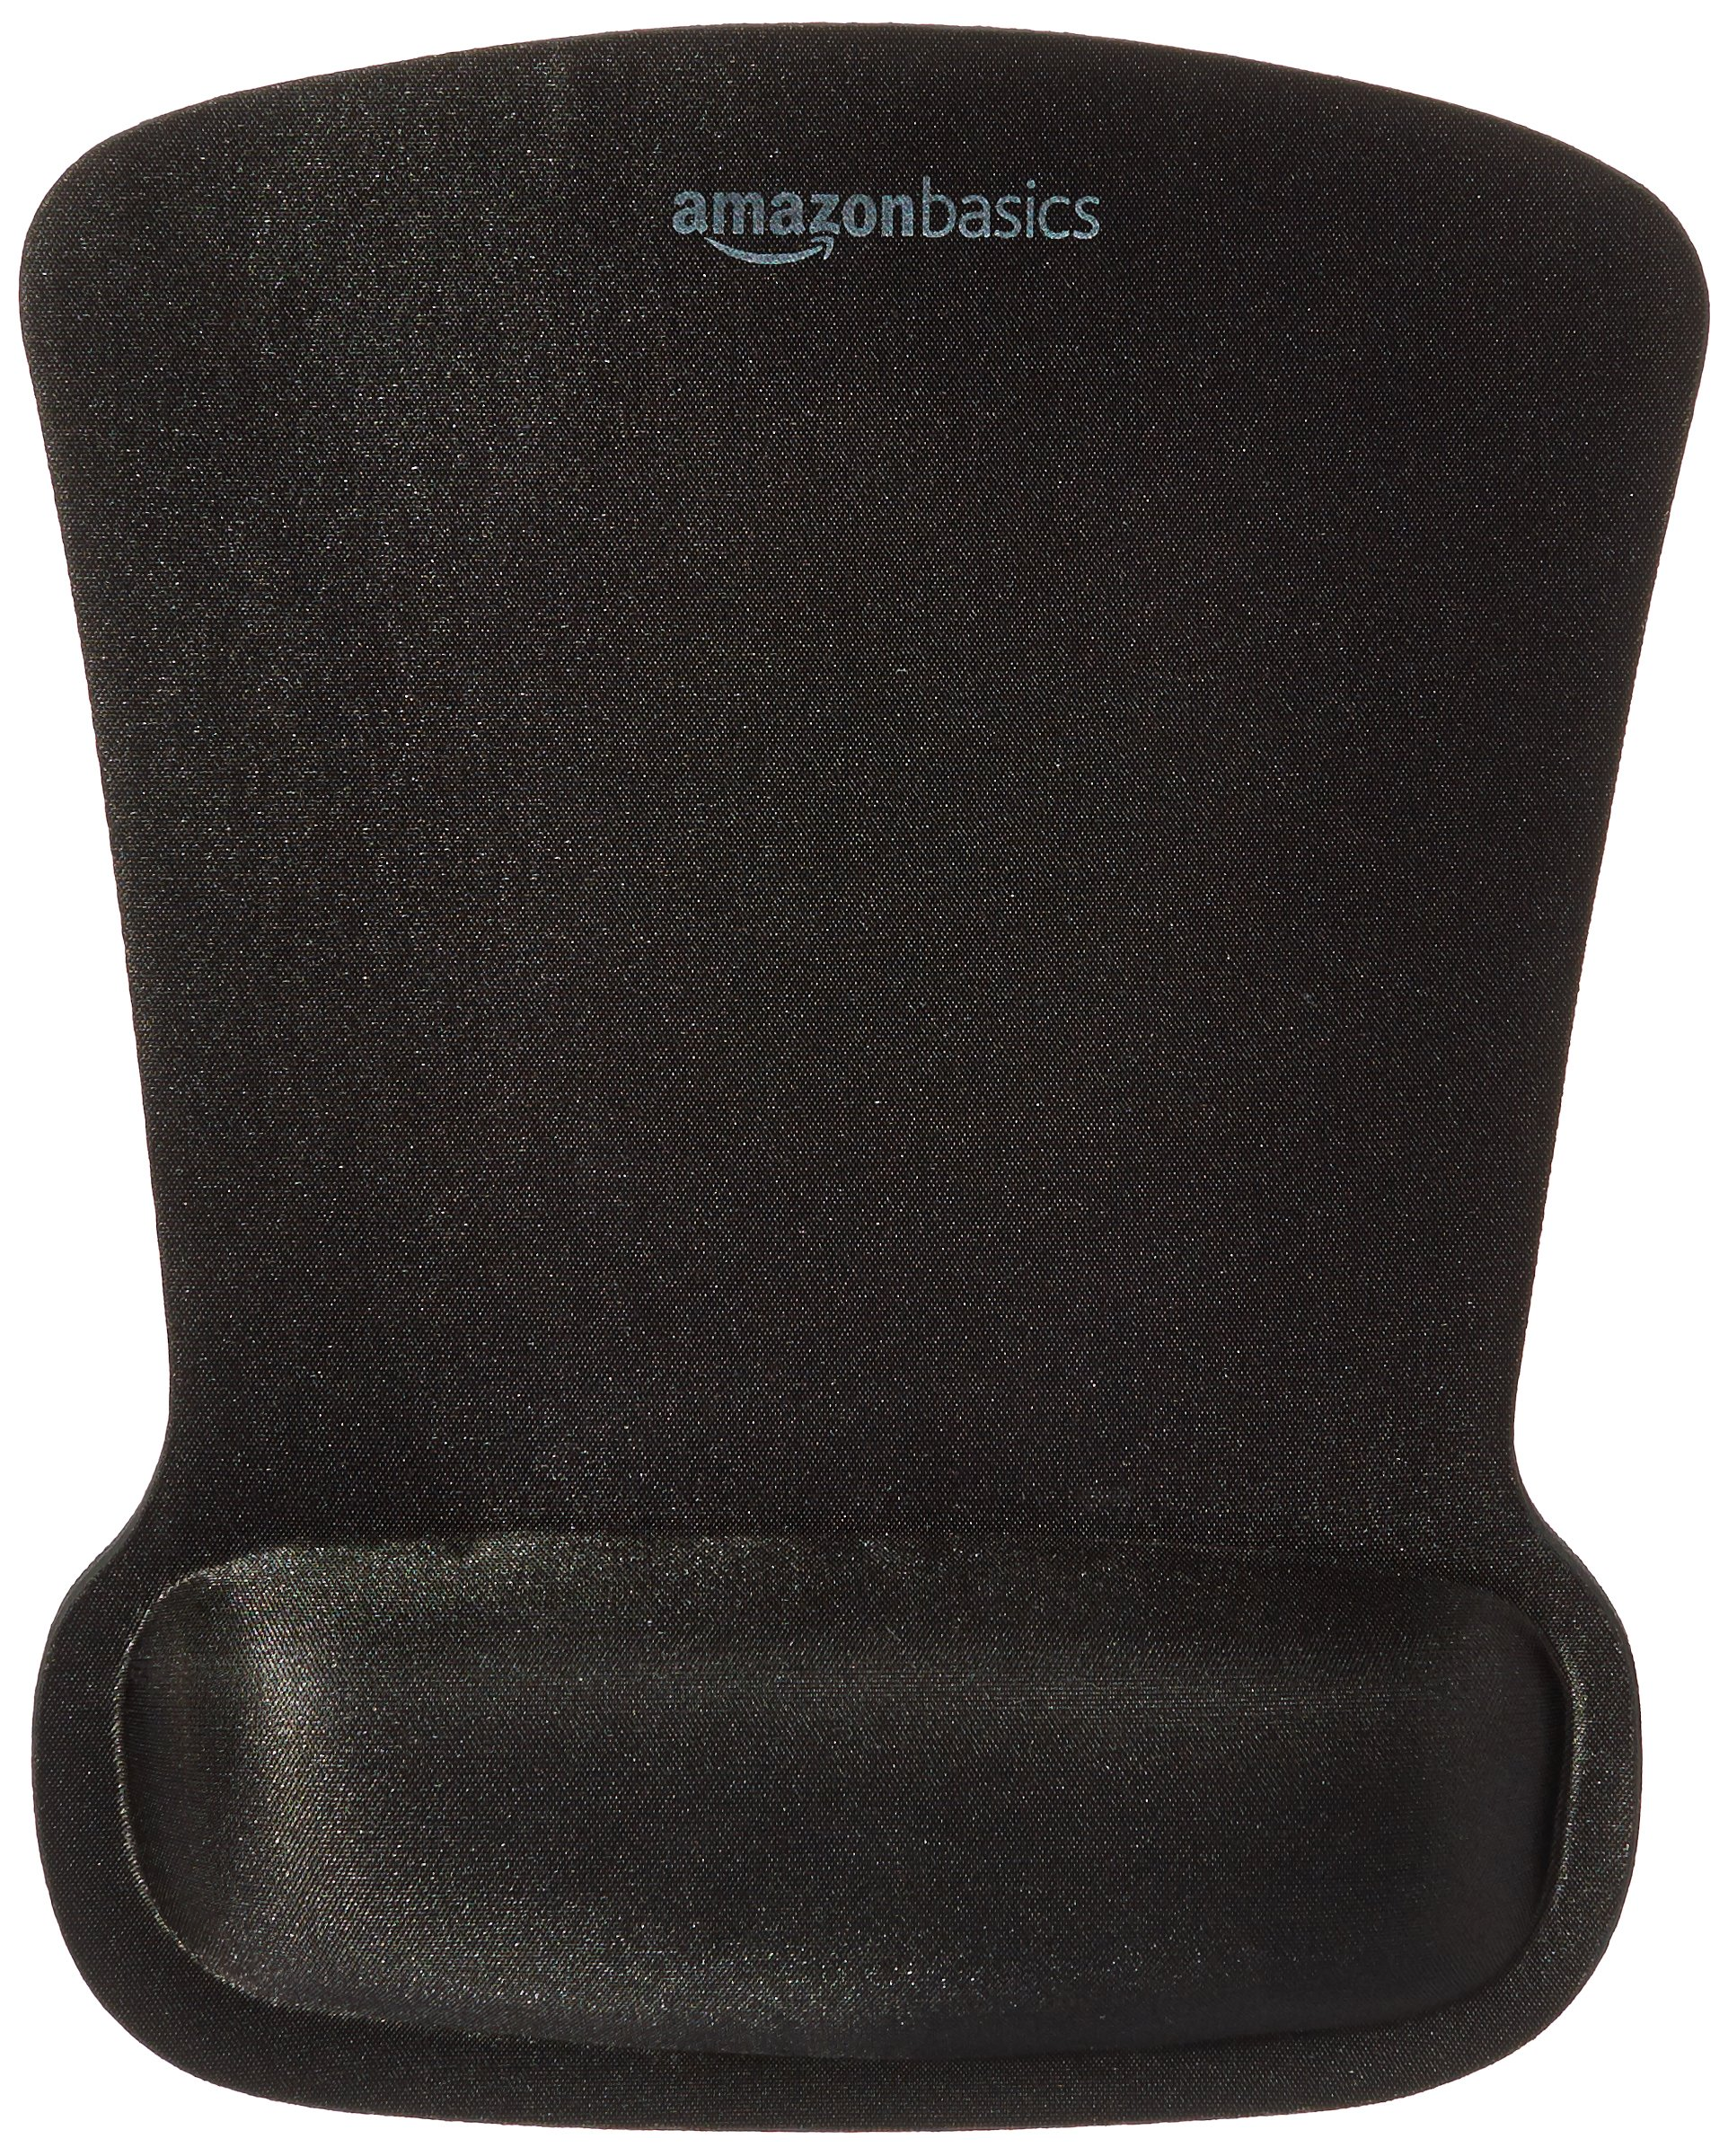 AmazonBasics Gel Mouse Pad with Wrist Support Rest - 10-Pack by AmazonBasics